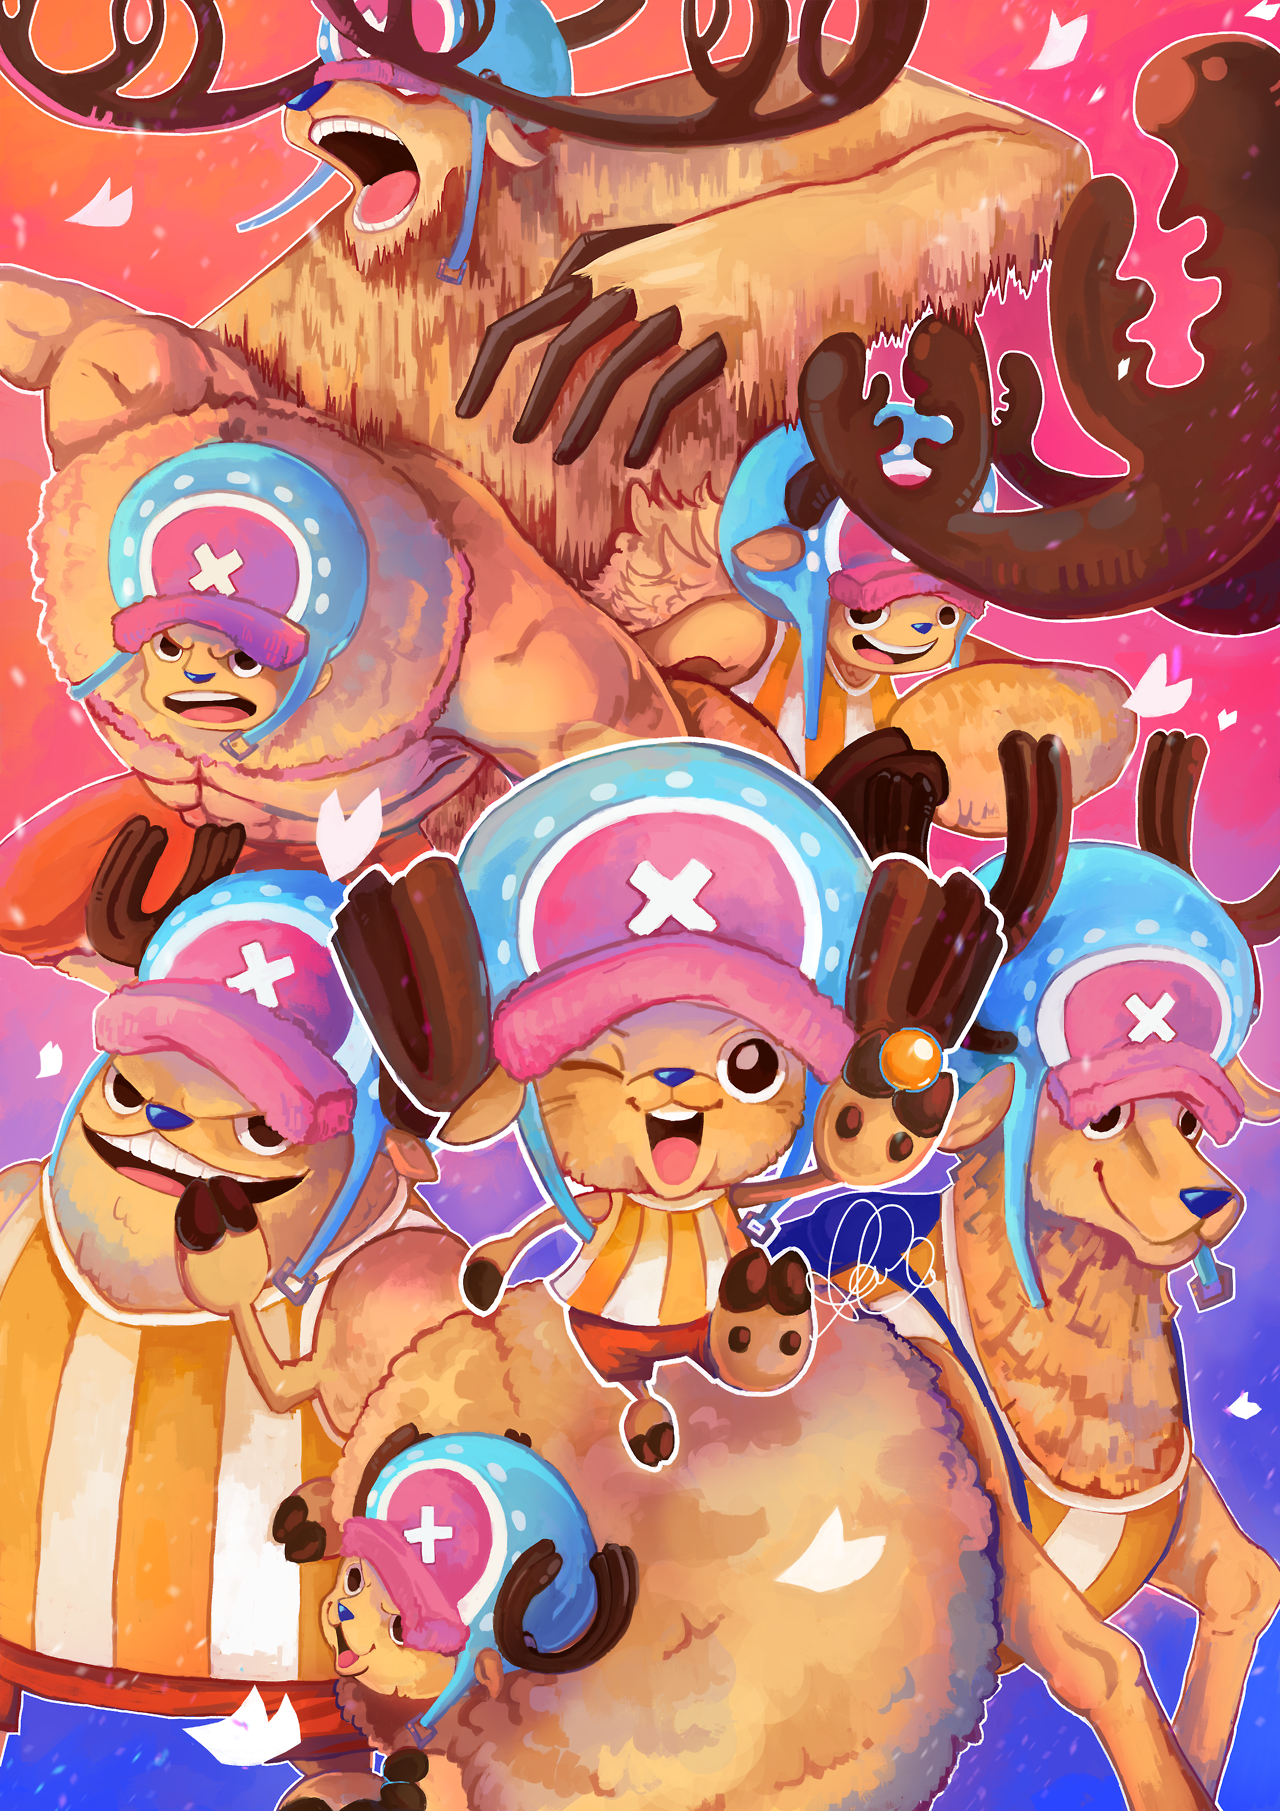 rumble one piece chopper one piece anime one piece funny